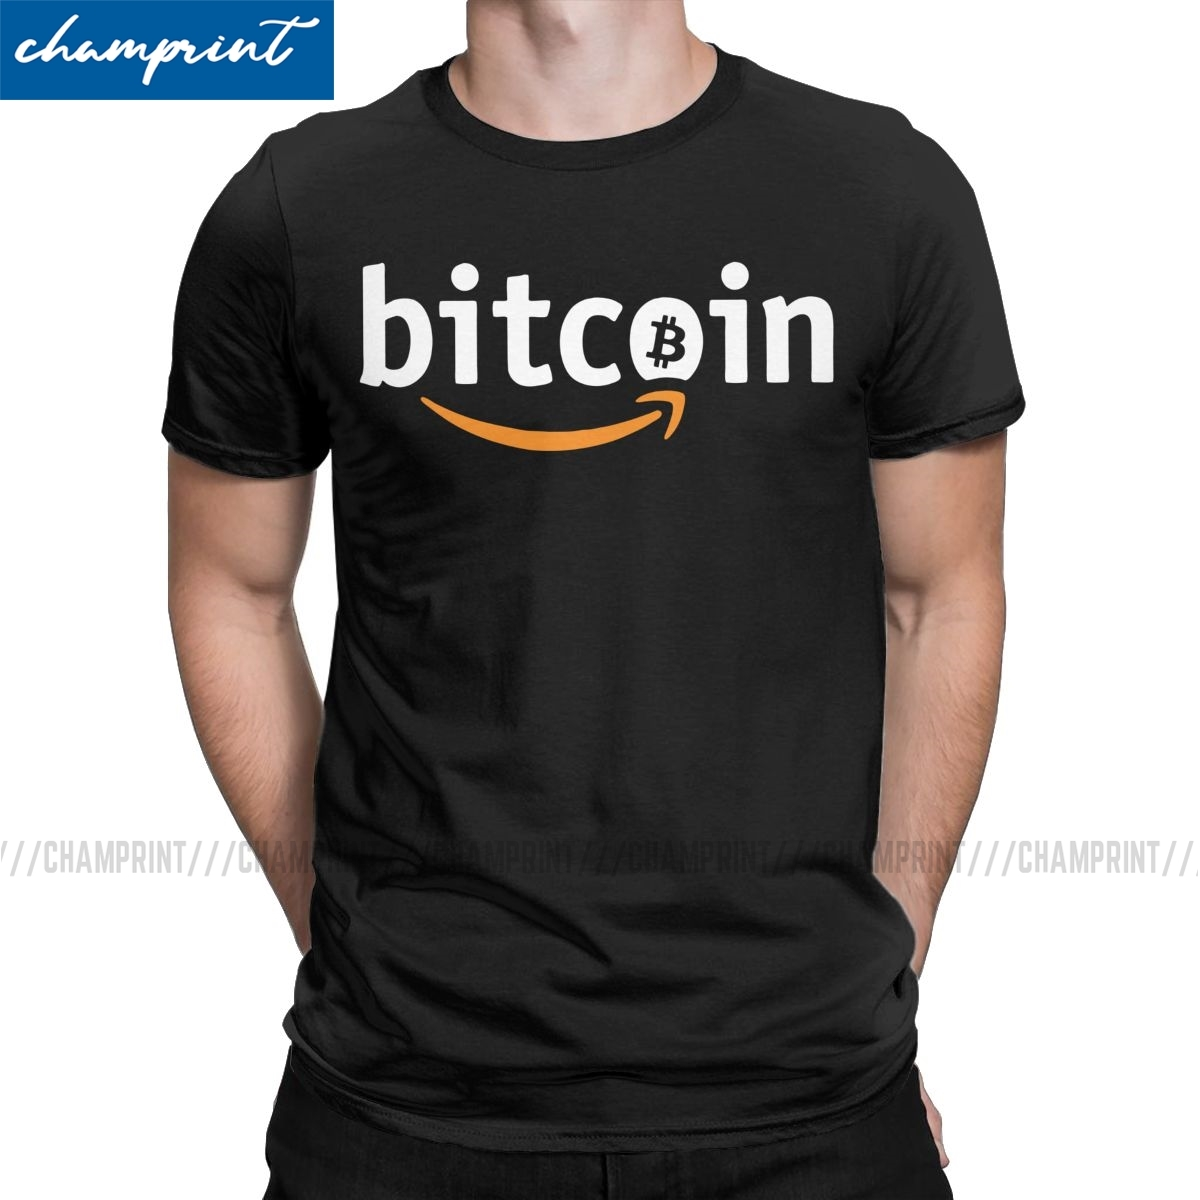 Vintage Bitcoin X Amazon alterne-cryptoboy T-Shirt hommes t-shirts Bitcoin Crypto-monnaie Btc Blockchain Geek t-shirts